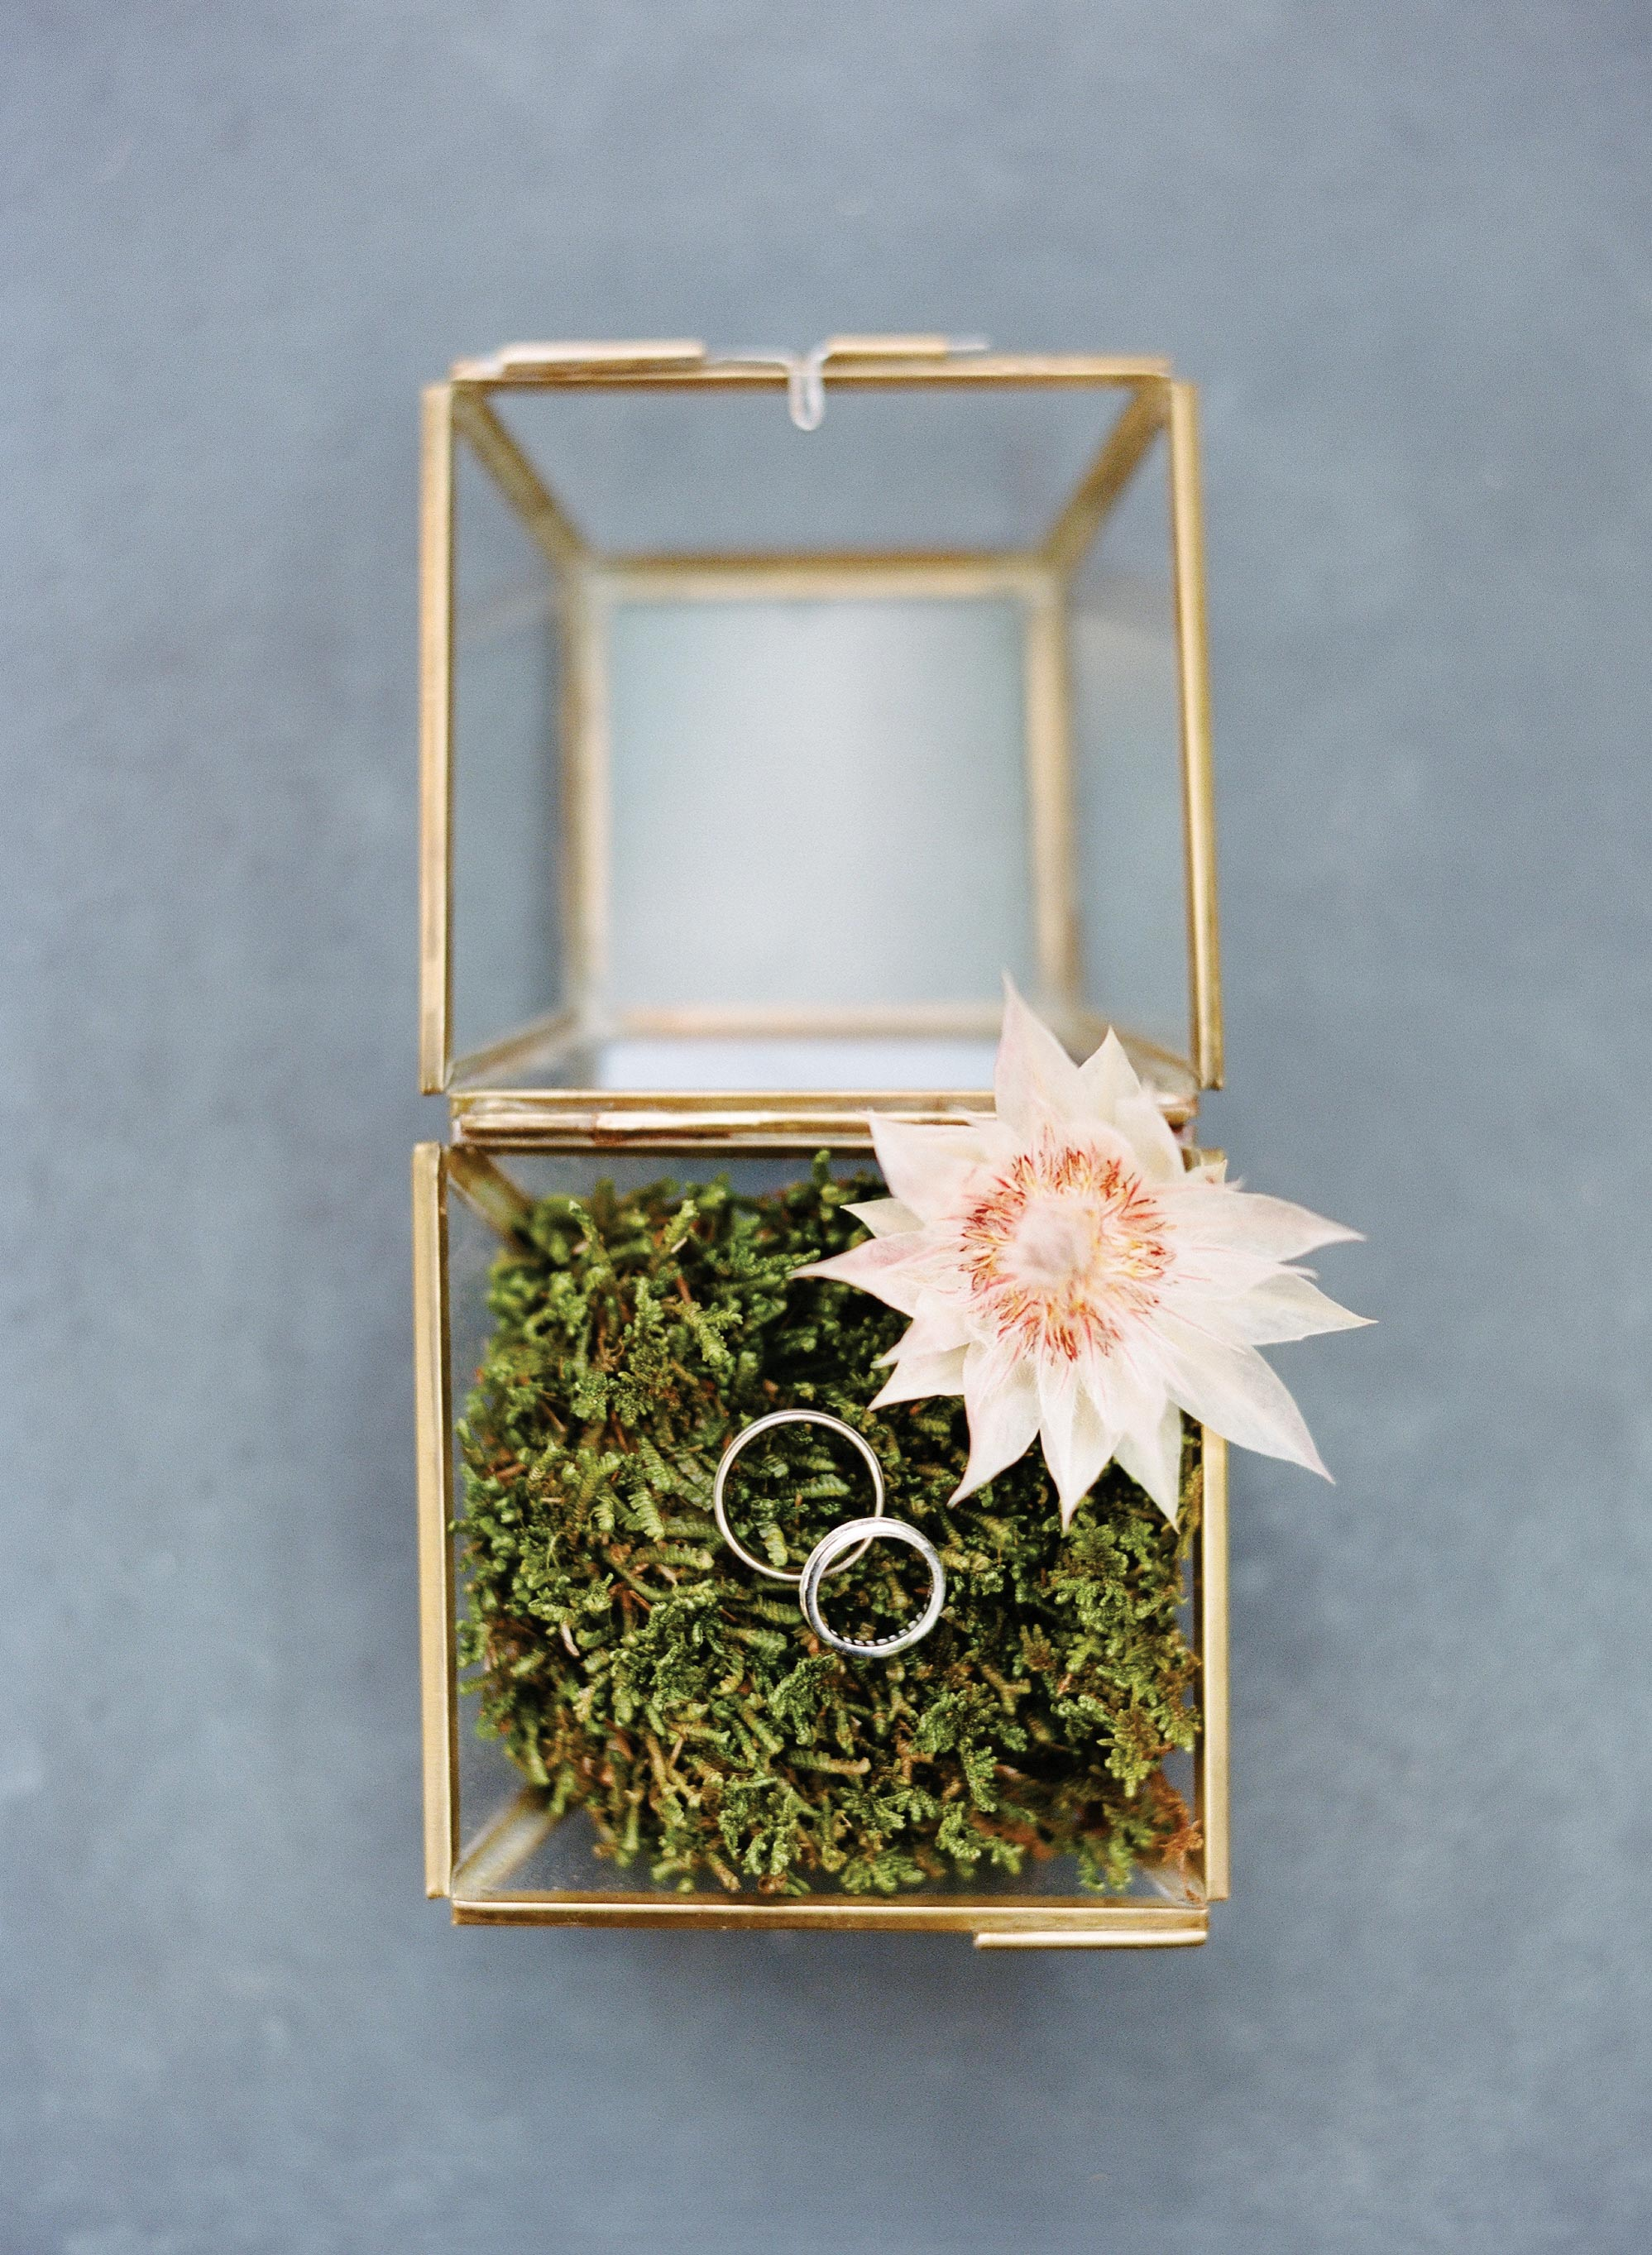 glara matthew wedding ring box